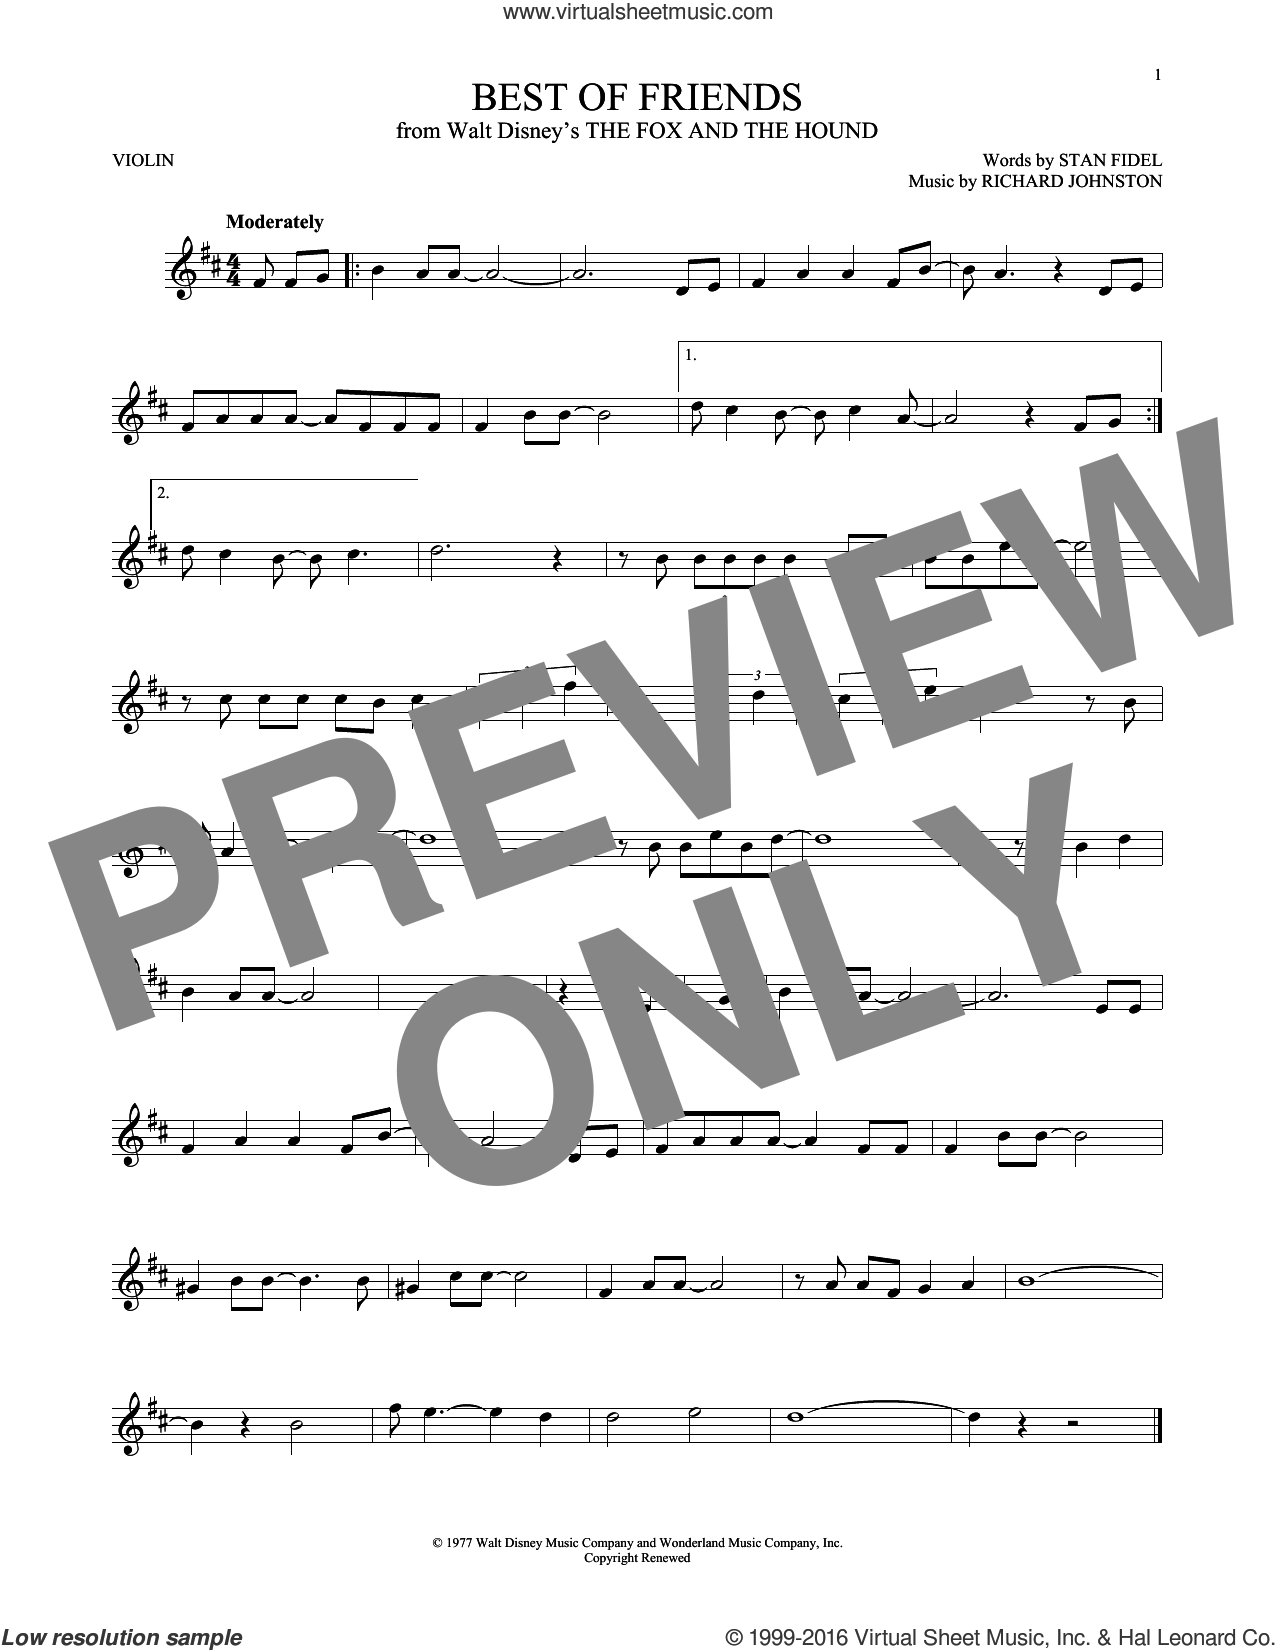 Best Of Friends sheet music for violin solo by Richard Johnston and Stan Fidel, intermediate skill level